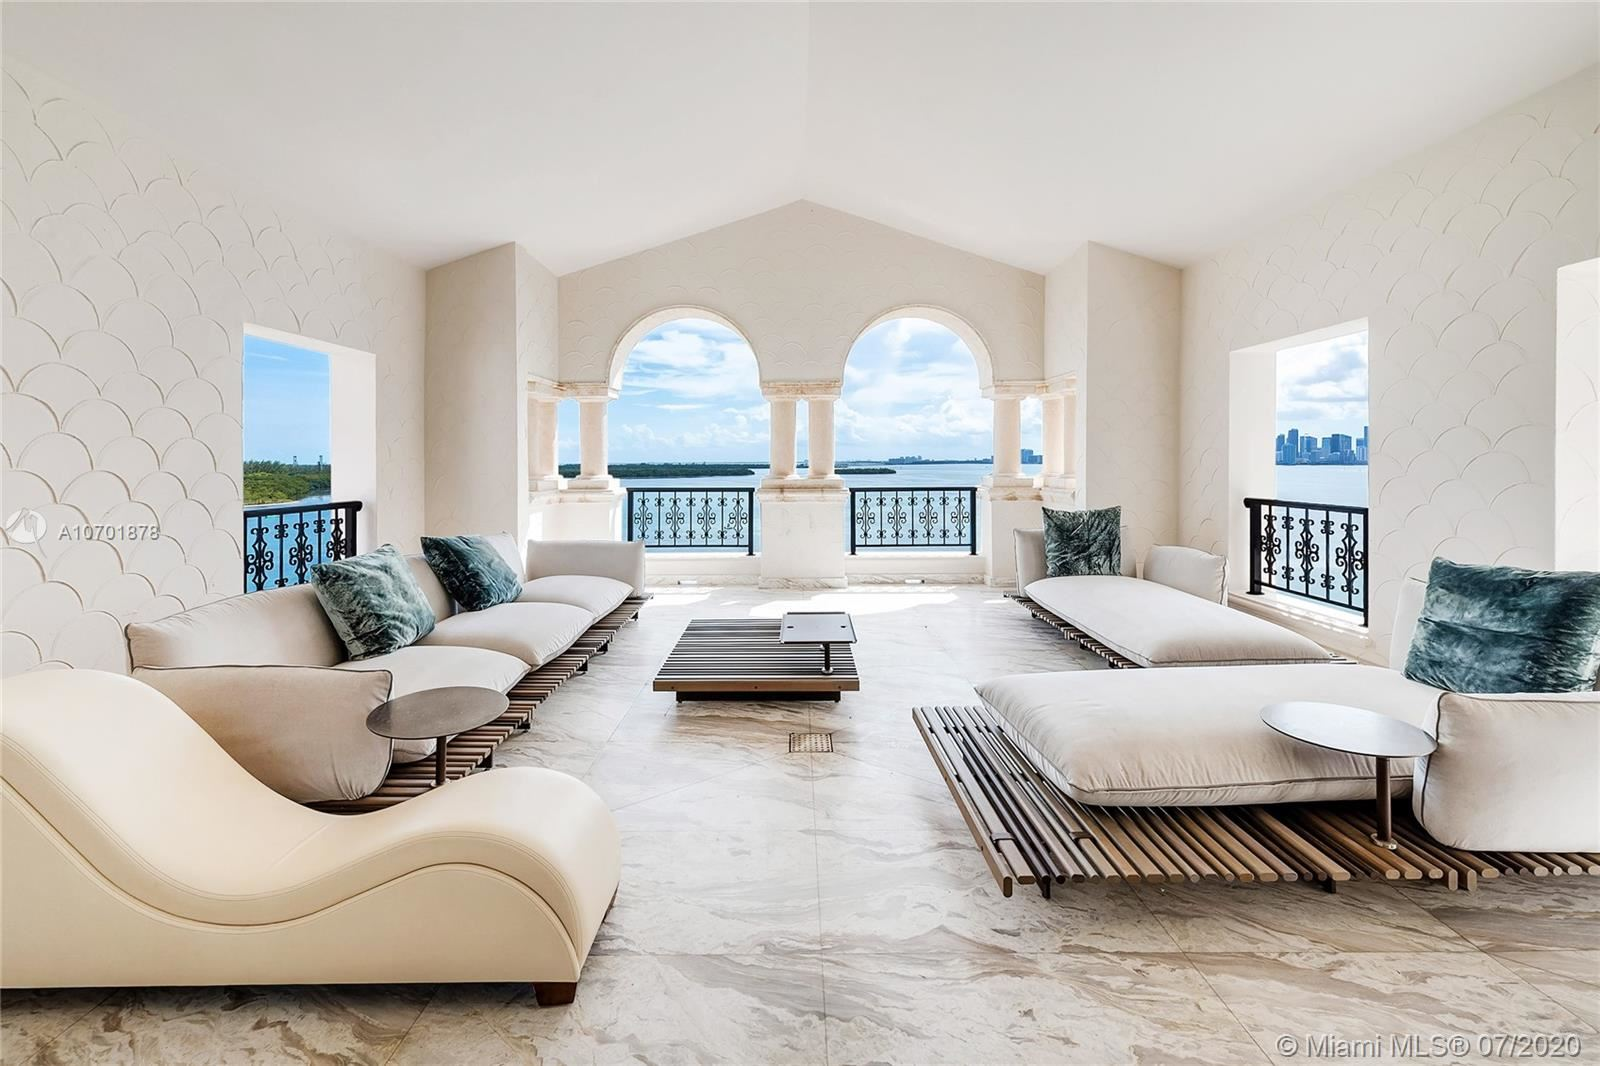 Photo 30 of Listing MLS a10701878 in 5292 Fisher Island Dr #5292 Miami FL 33109